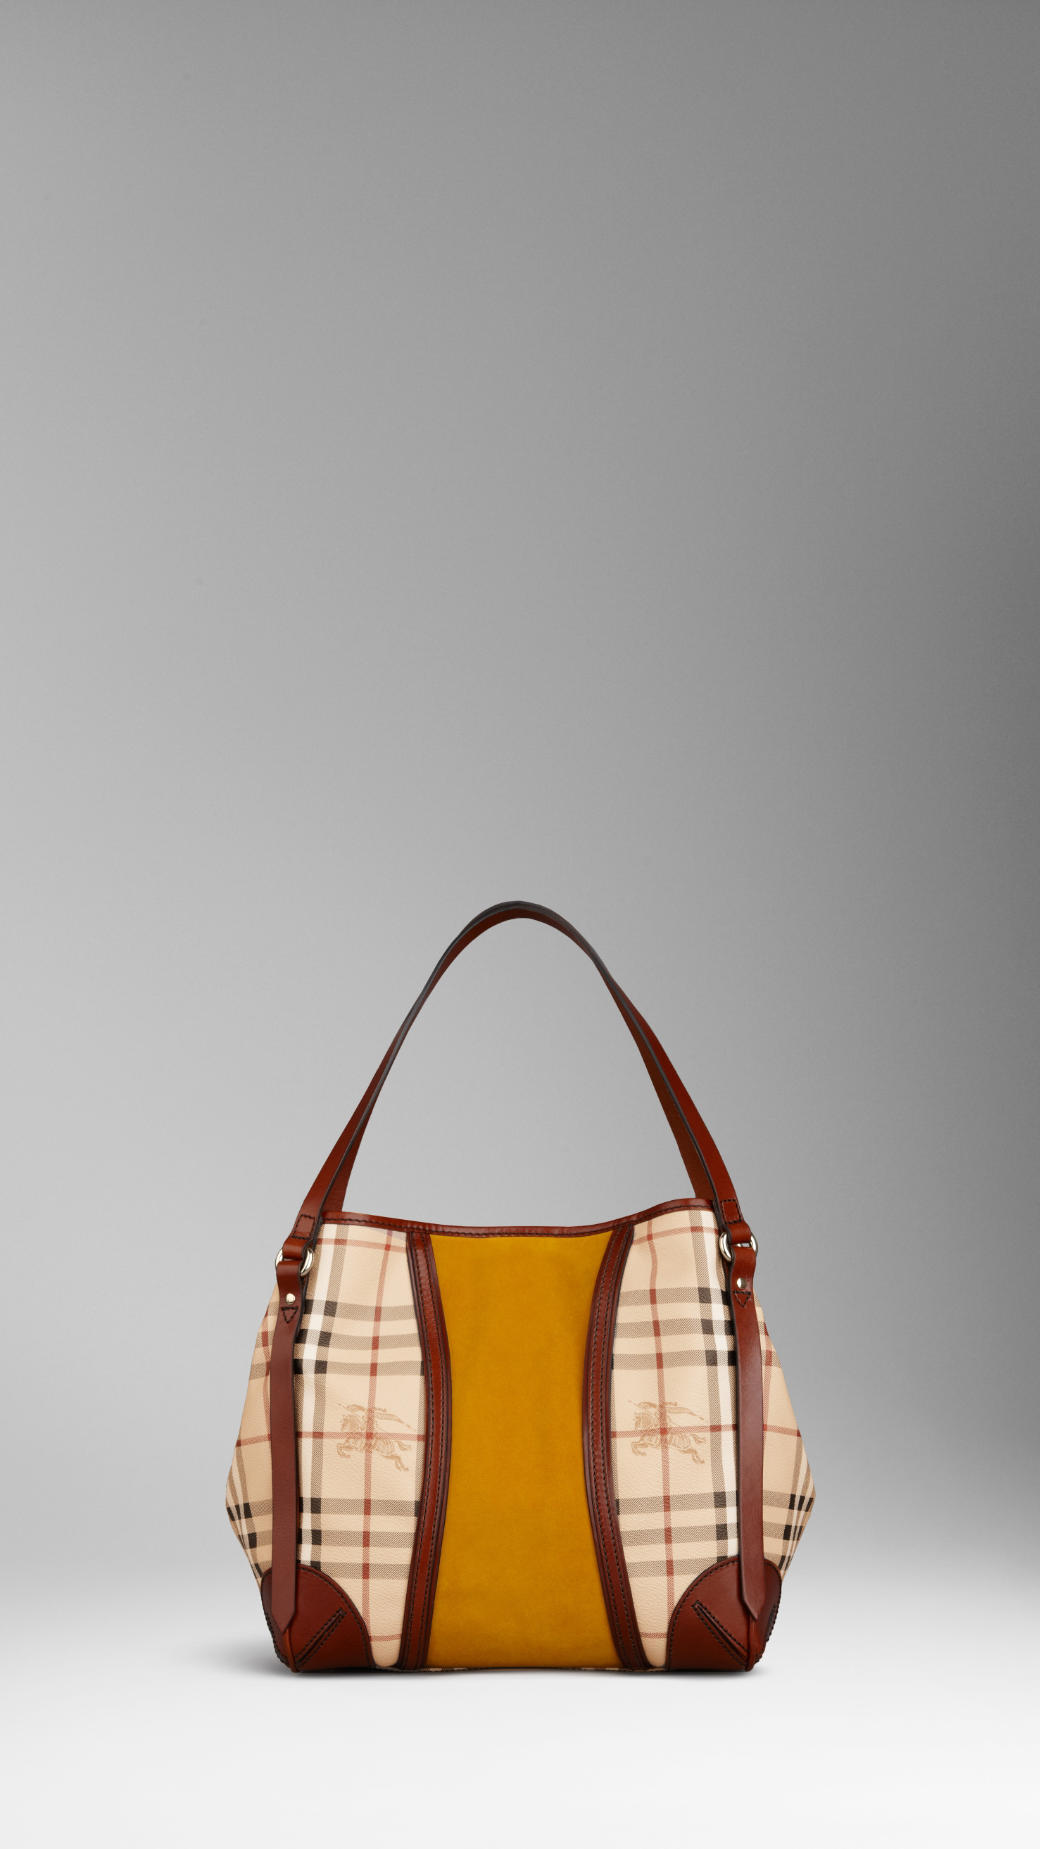 Burberry Small Haymarket Suede Panel Tote Bag in Yellow